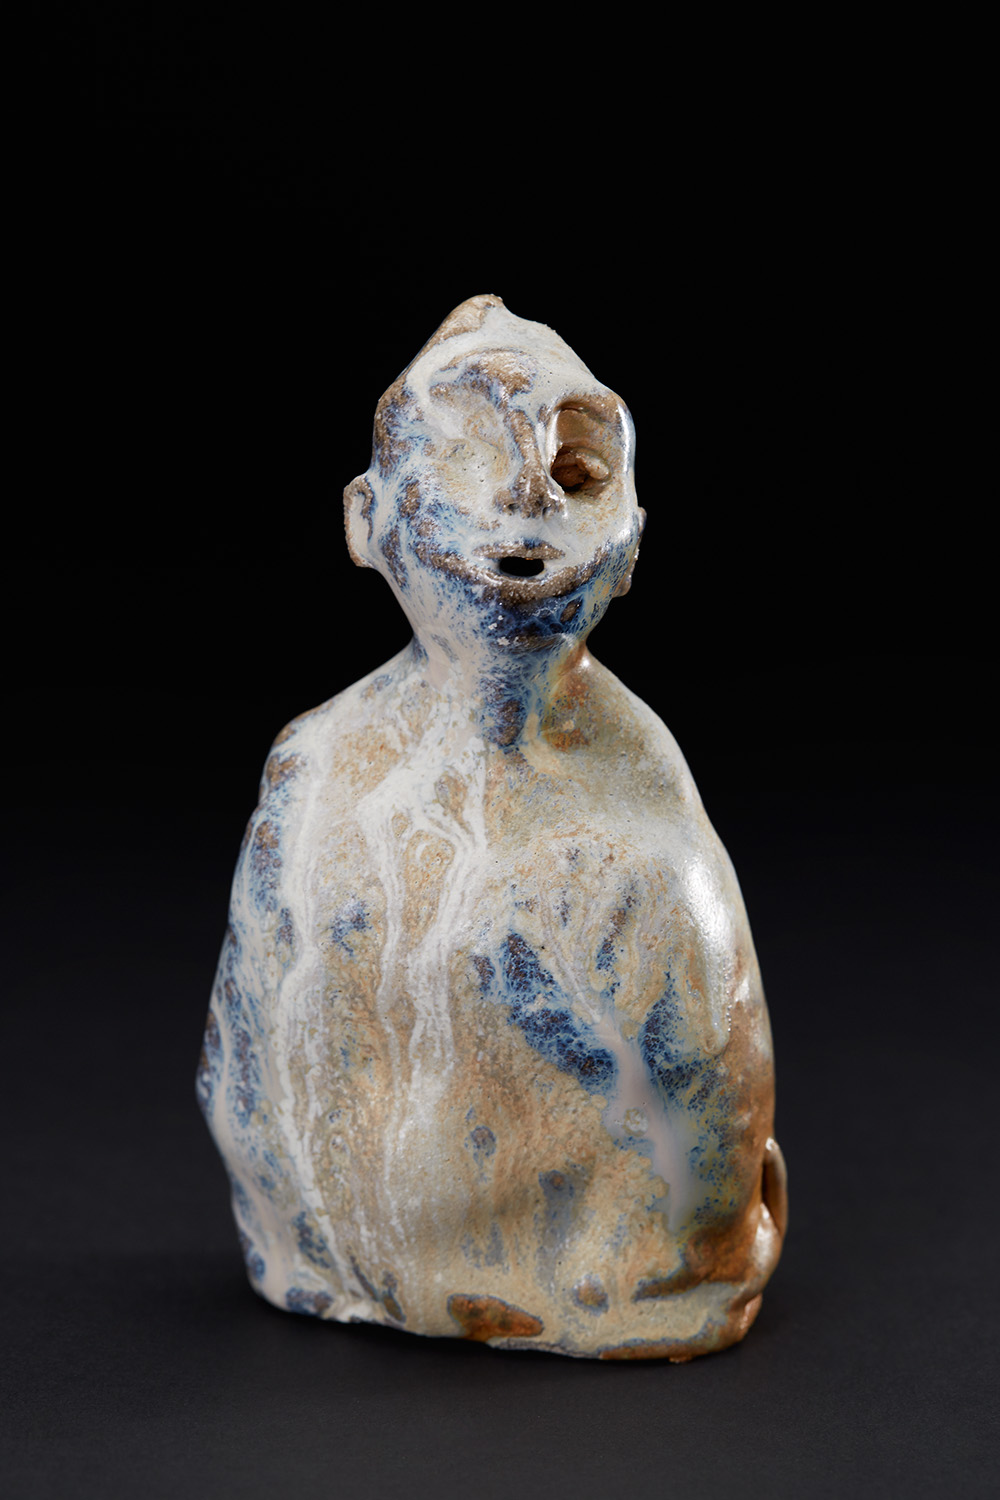 Chrissy Callas    Blue Fragman  , 2000 Ceramic 6 x 3.25 x 2 inches 15.2 x 8.3 x 5.1 cm CCa 40